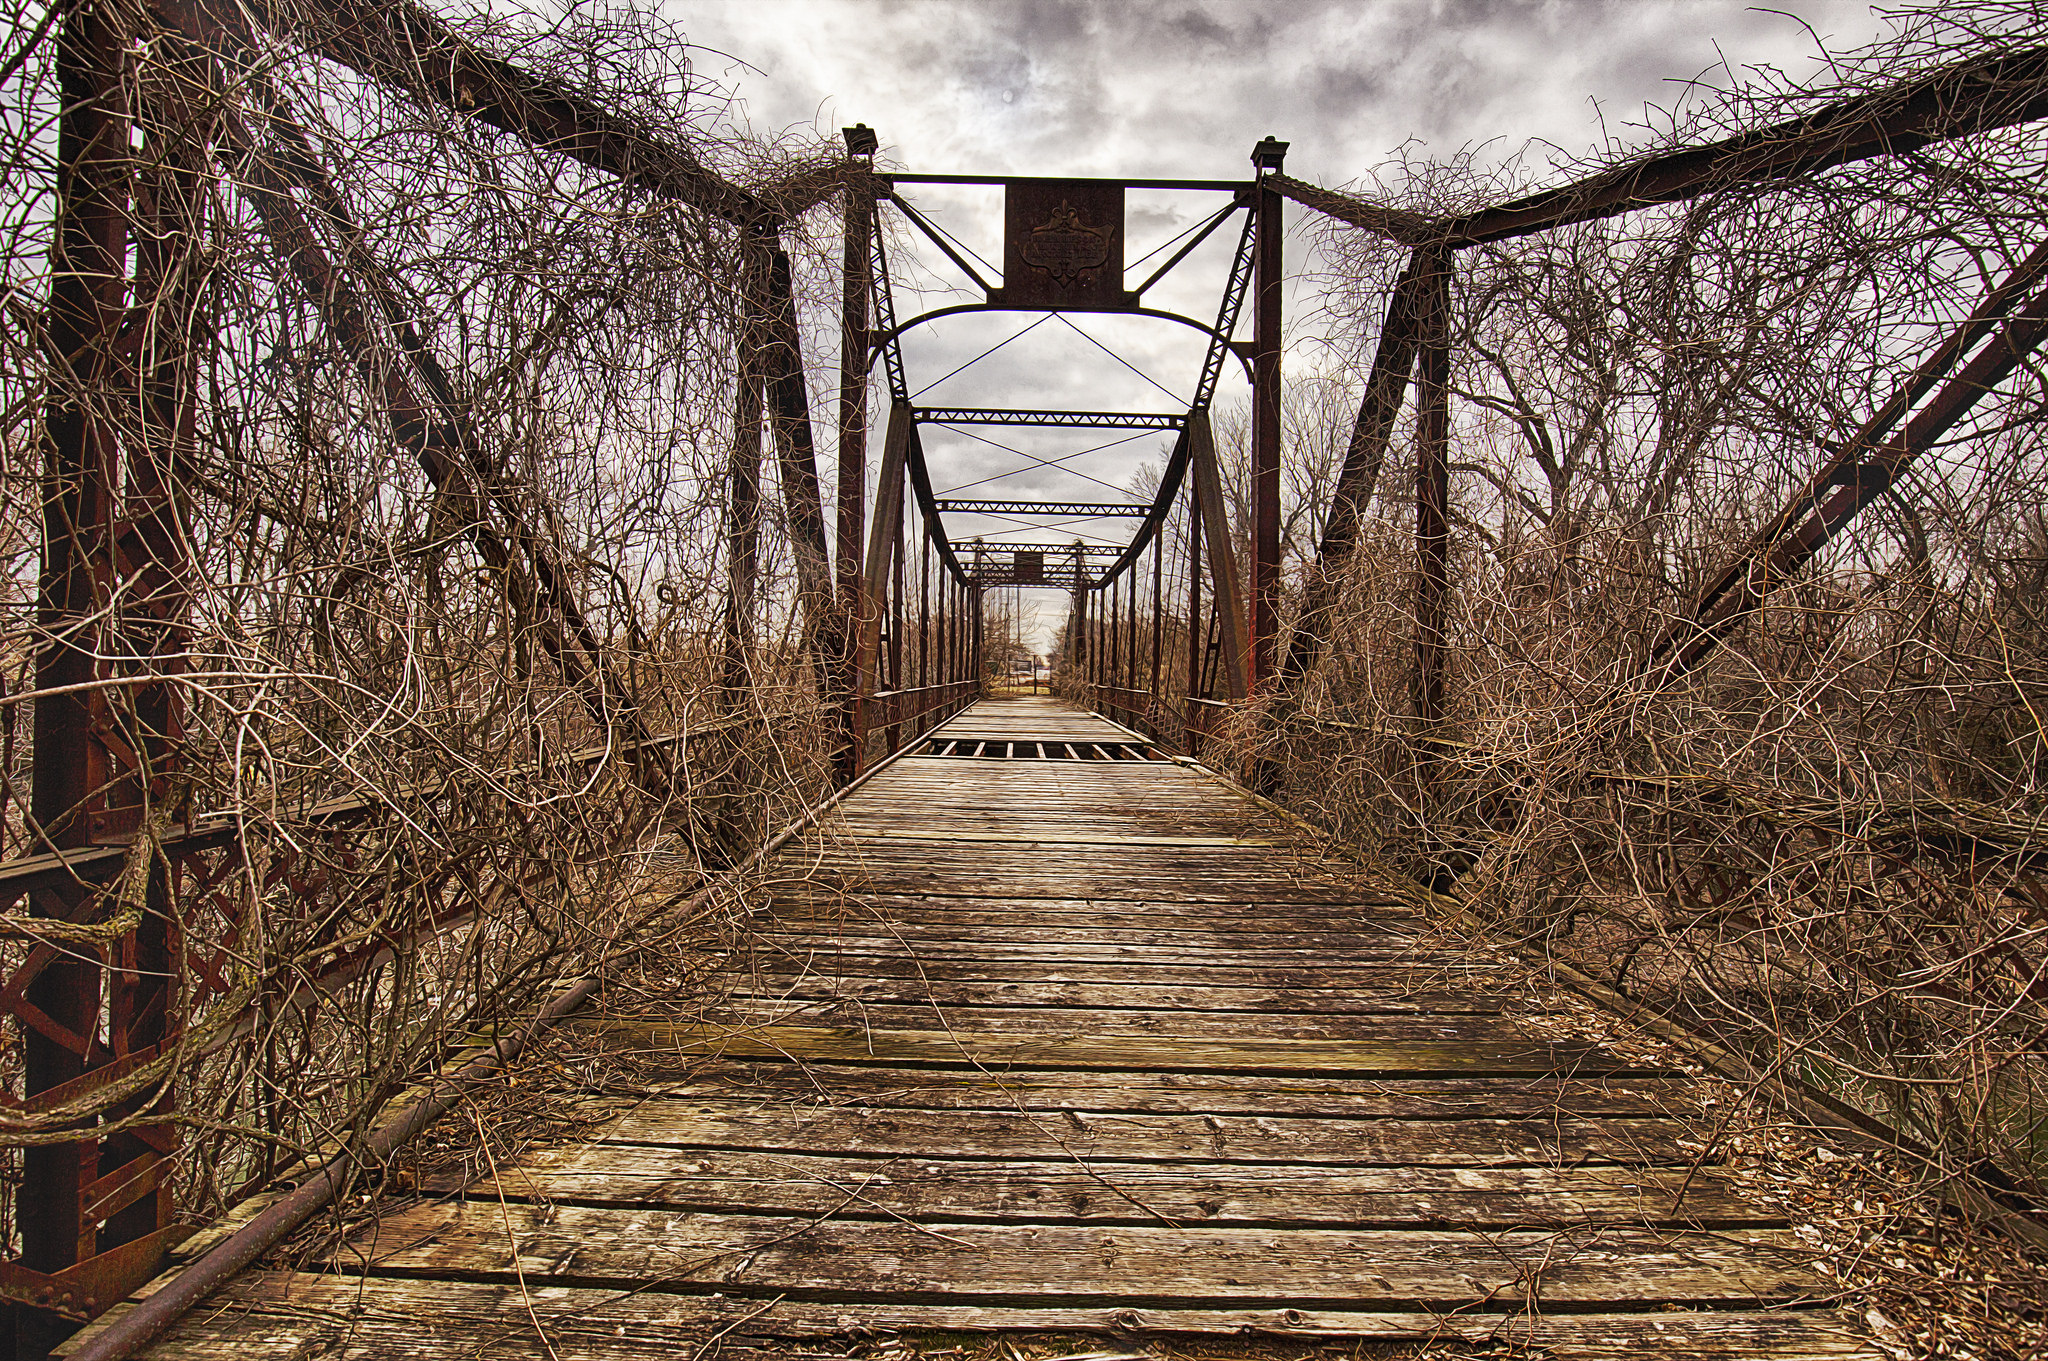 Power of Attorney in Gilbert - wooden bridge with overgrown vines